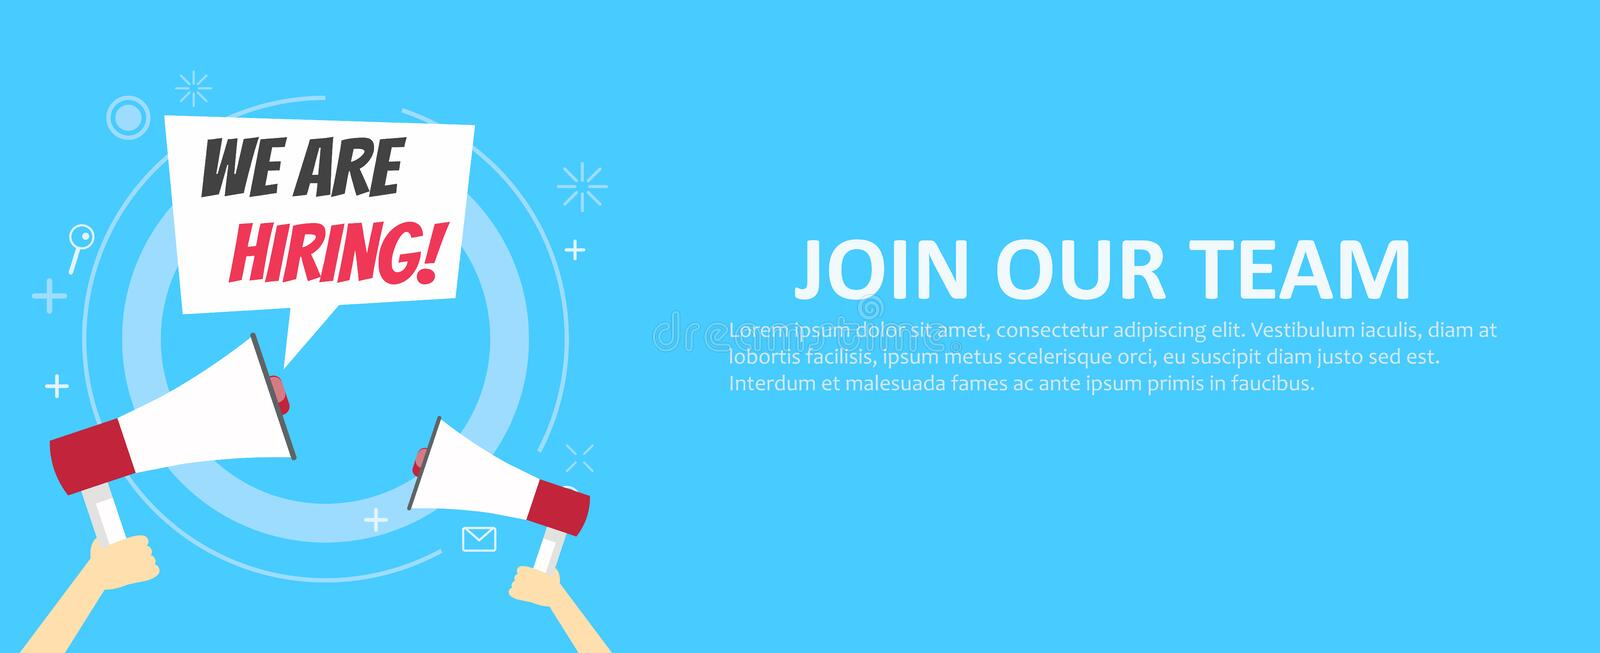 We are hiring banner. Join our team. Blue background and hands holding a megaphone. Vector flat illustration stock illustration